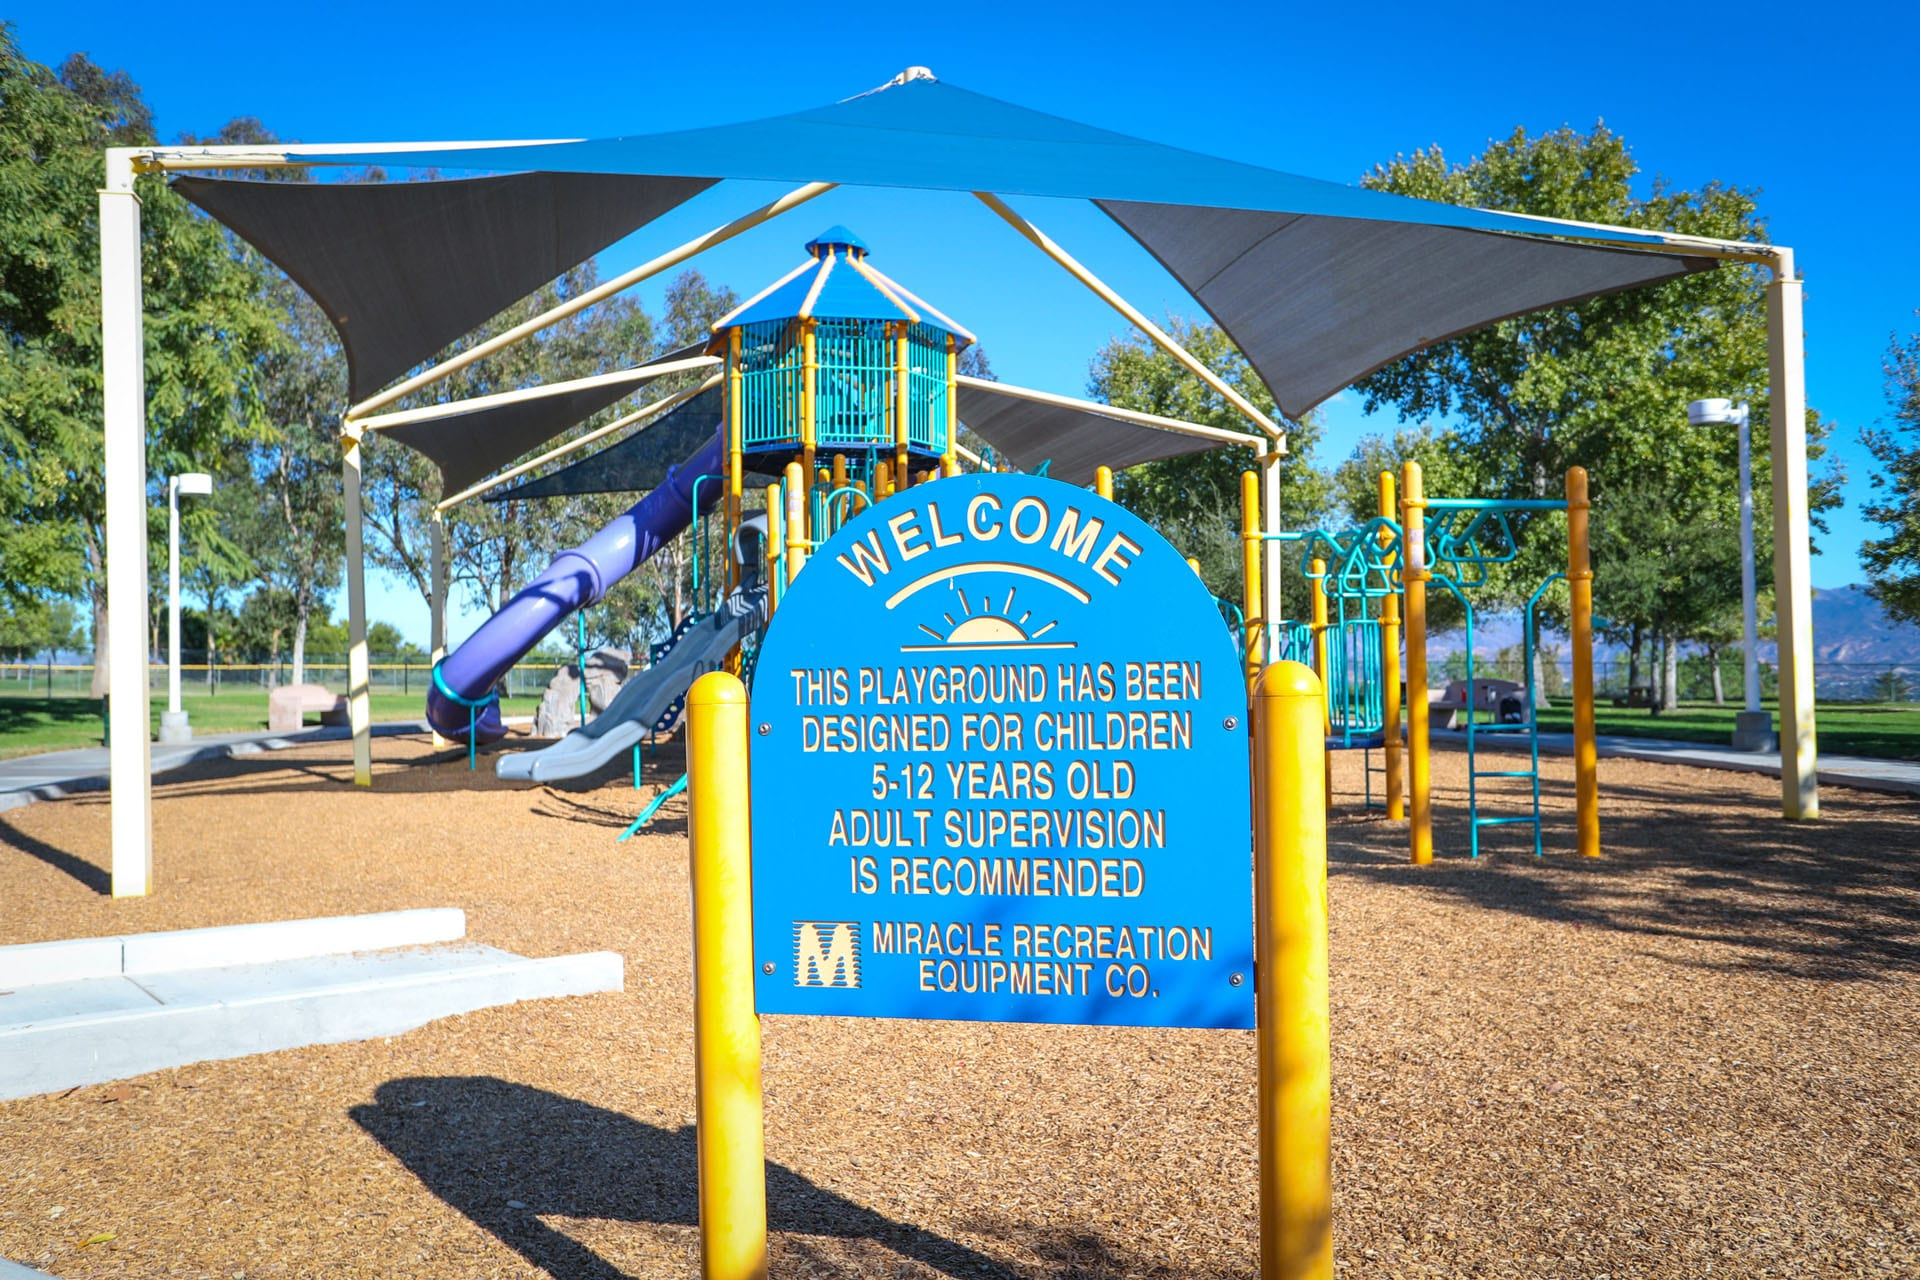 Welcome sign at the playground